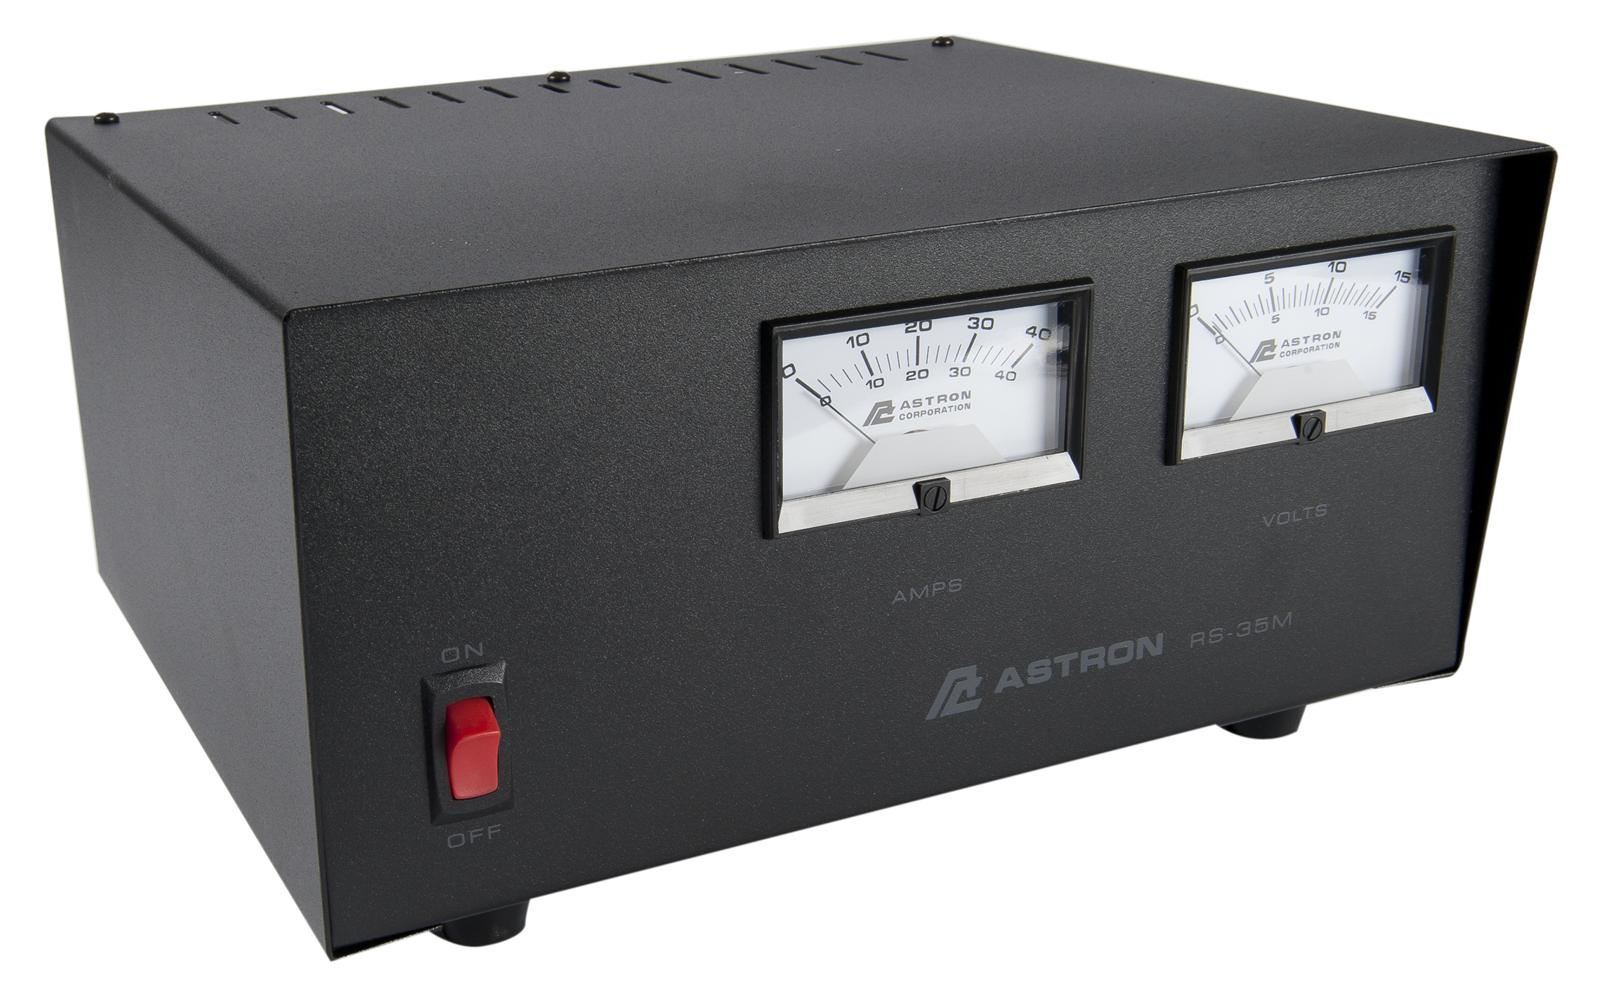 RS35M - Astron 35 Amp Power Supply With Meter